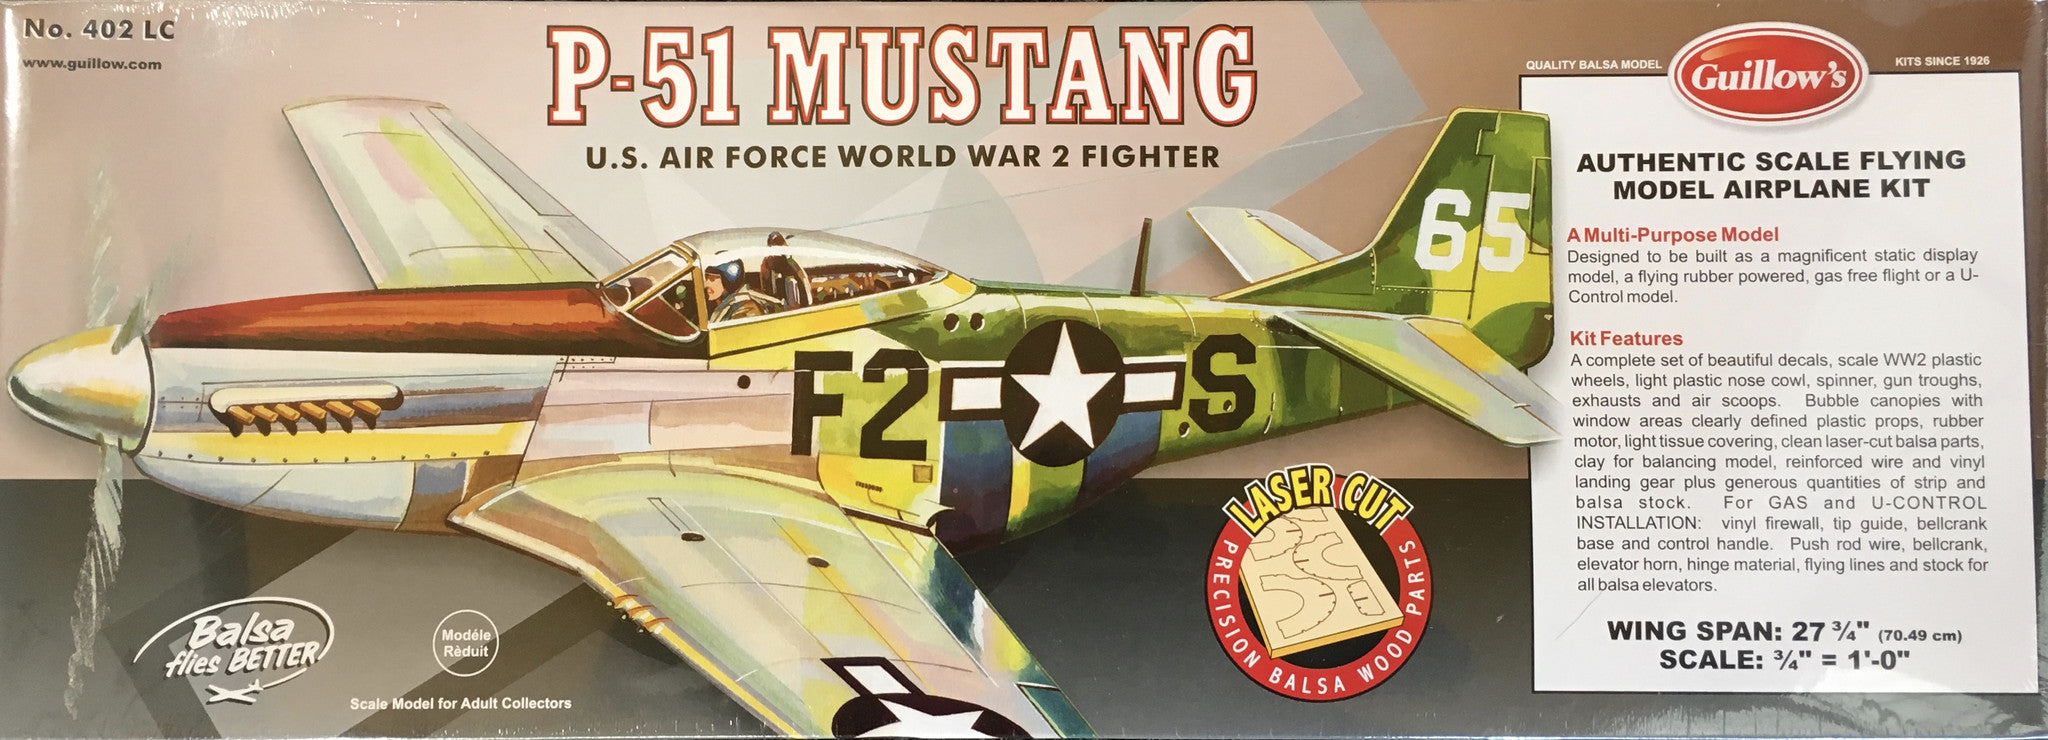 P-51 Mustang Lazer Cut Model